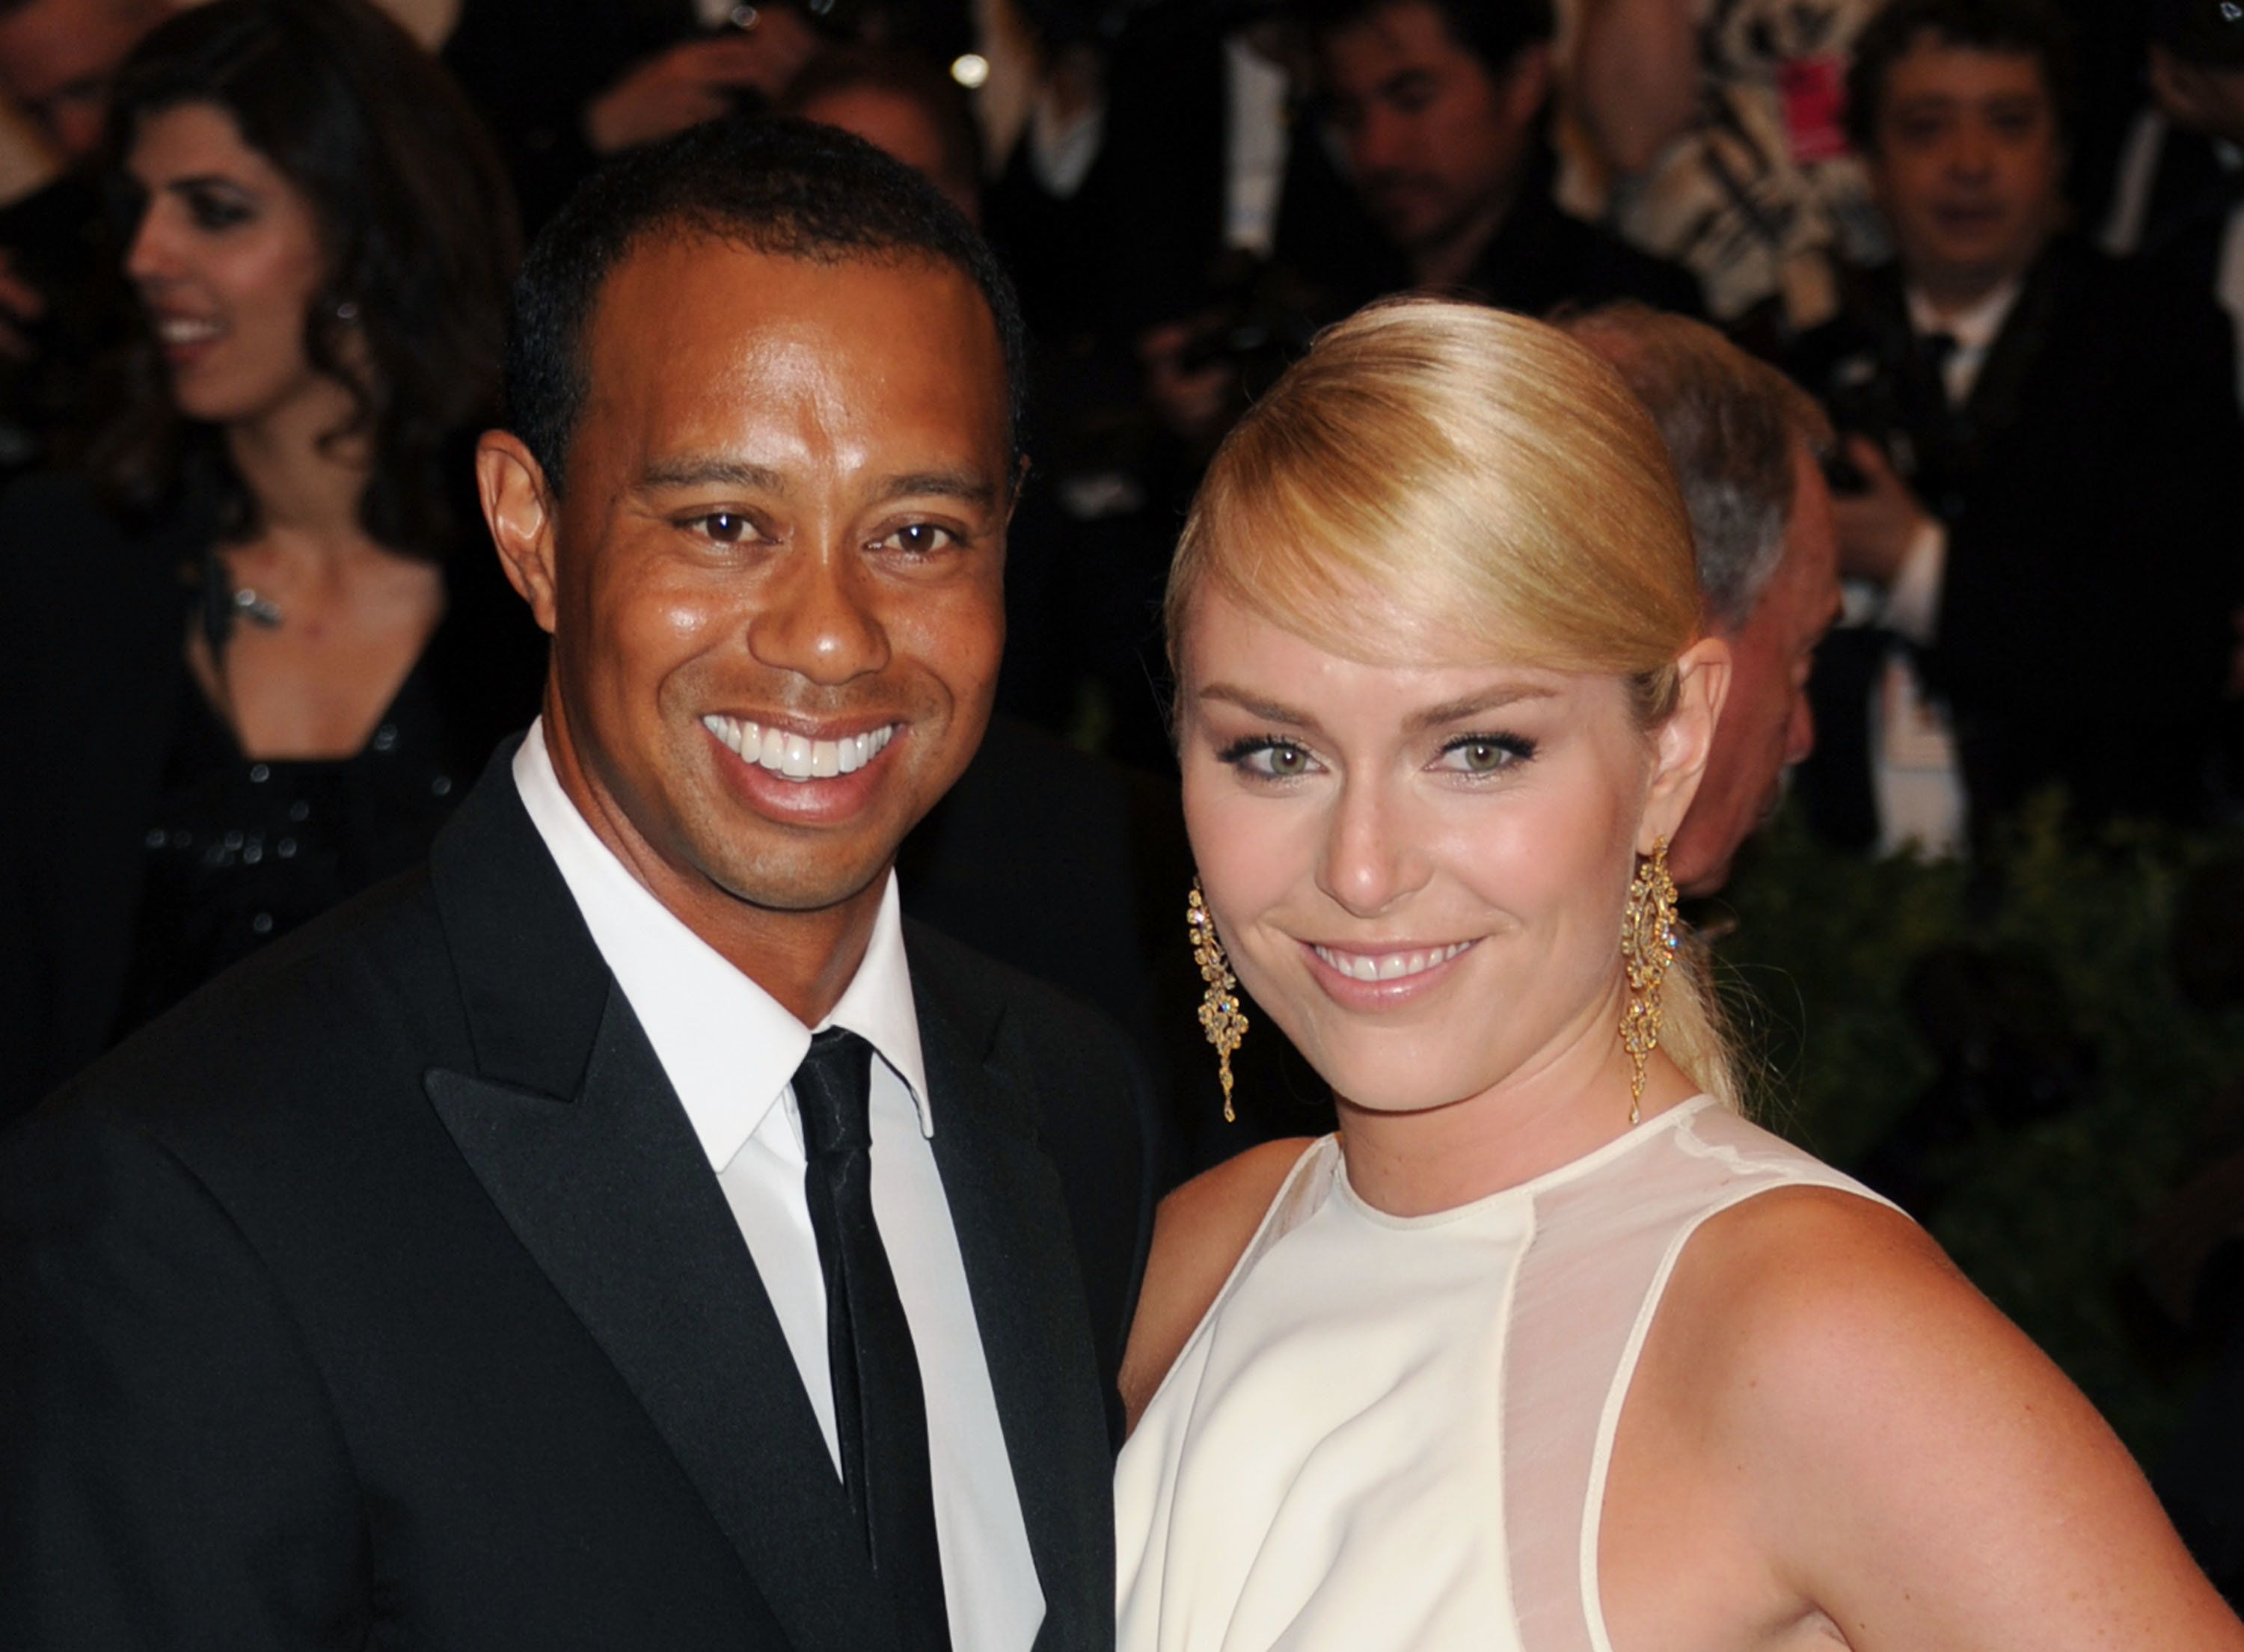 Tiger Woods and Lindsey Vonn at the Met Ball in May 2013.